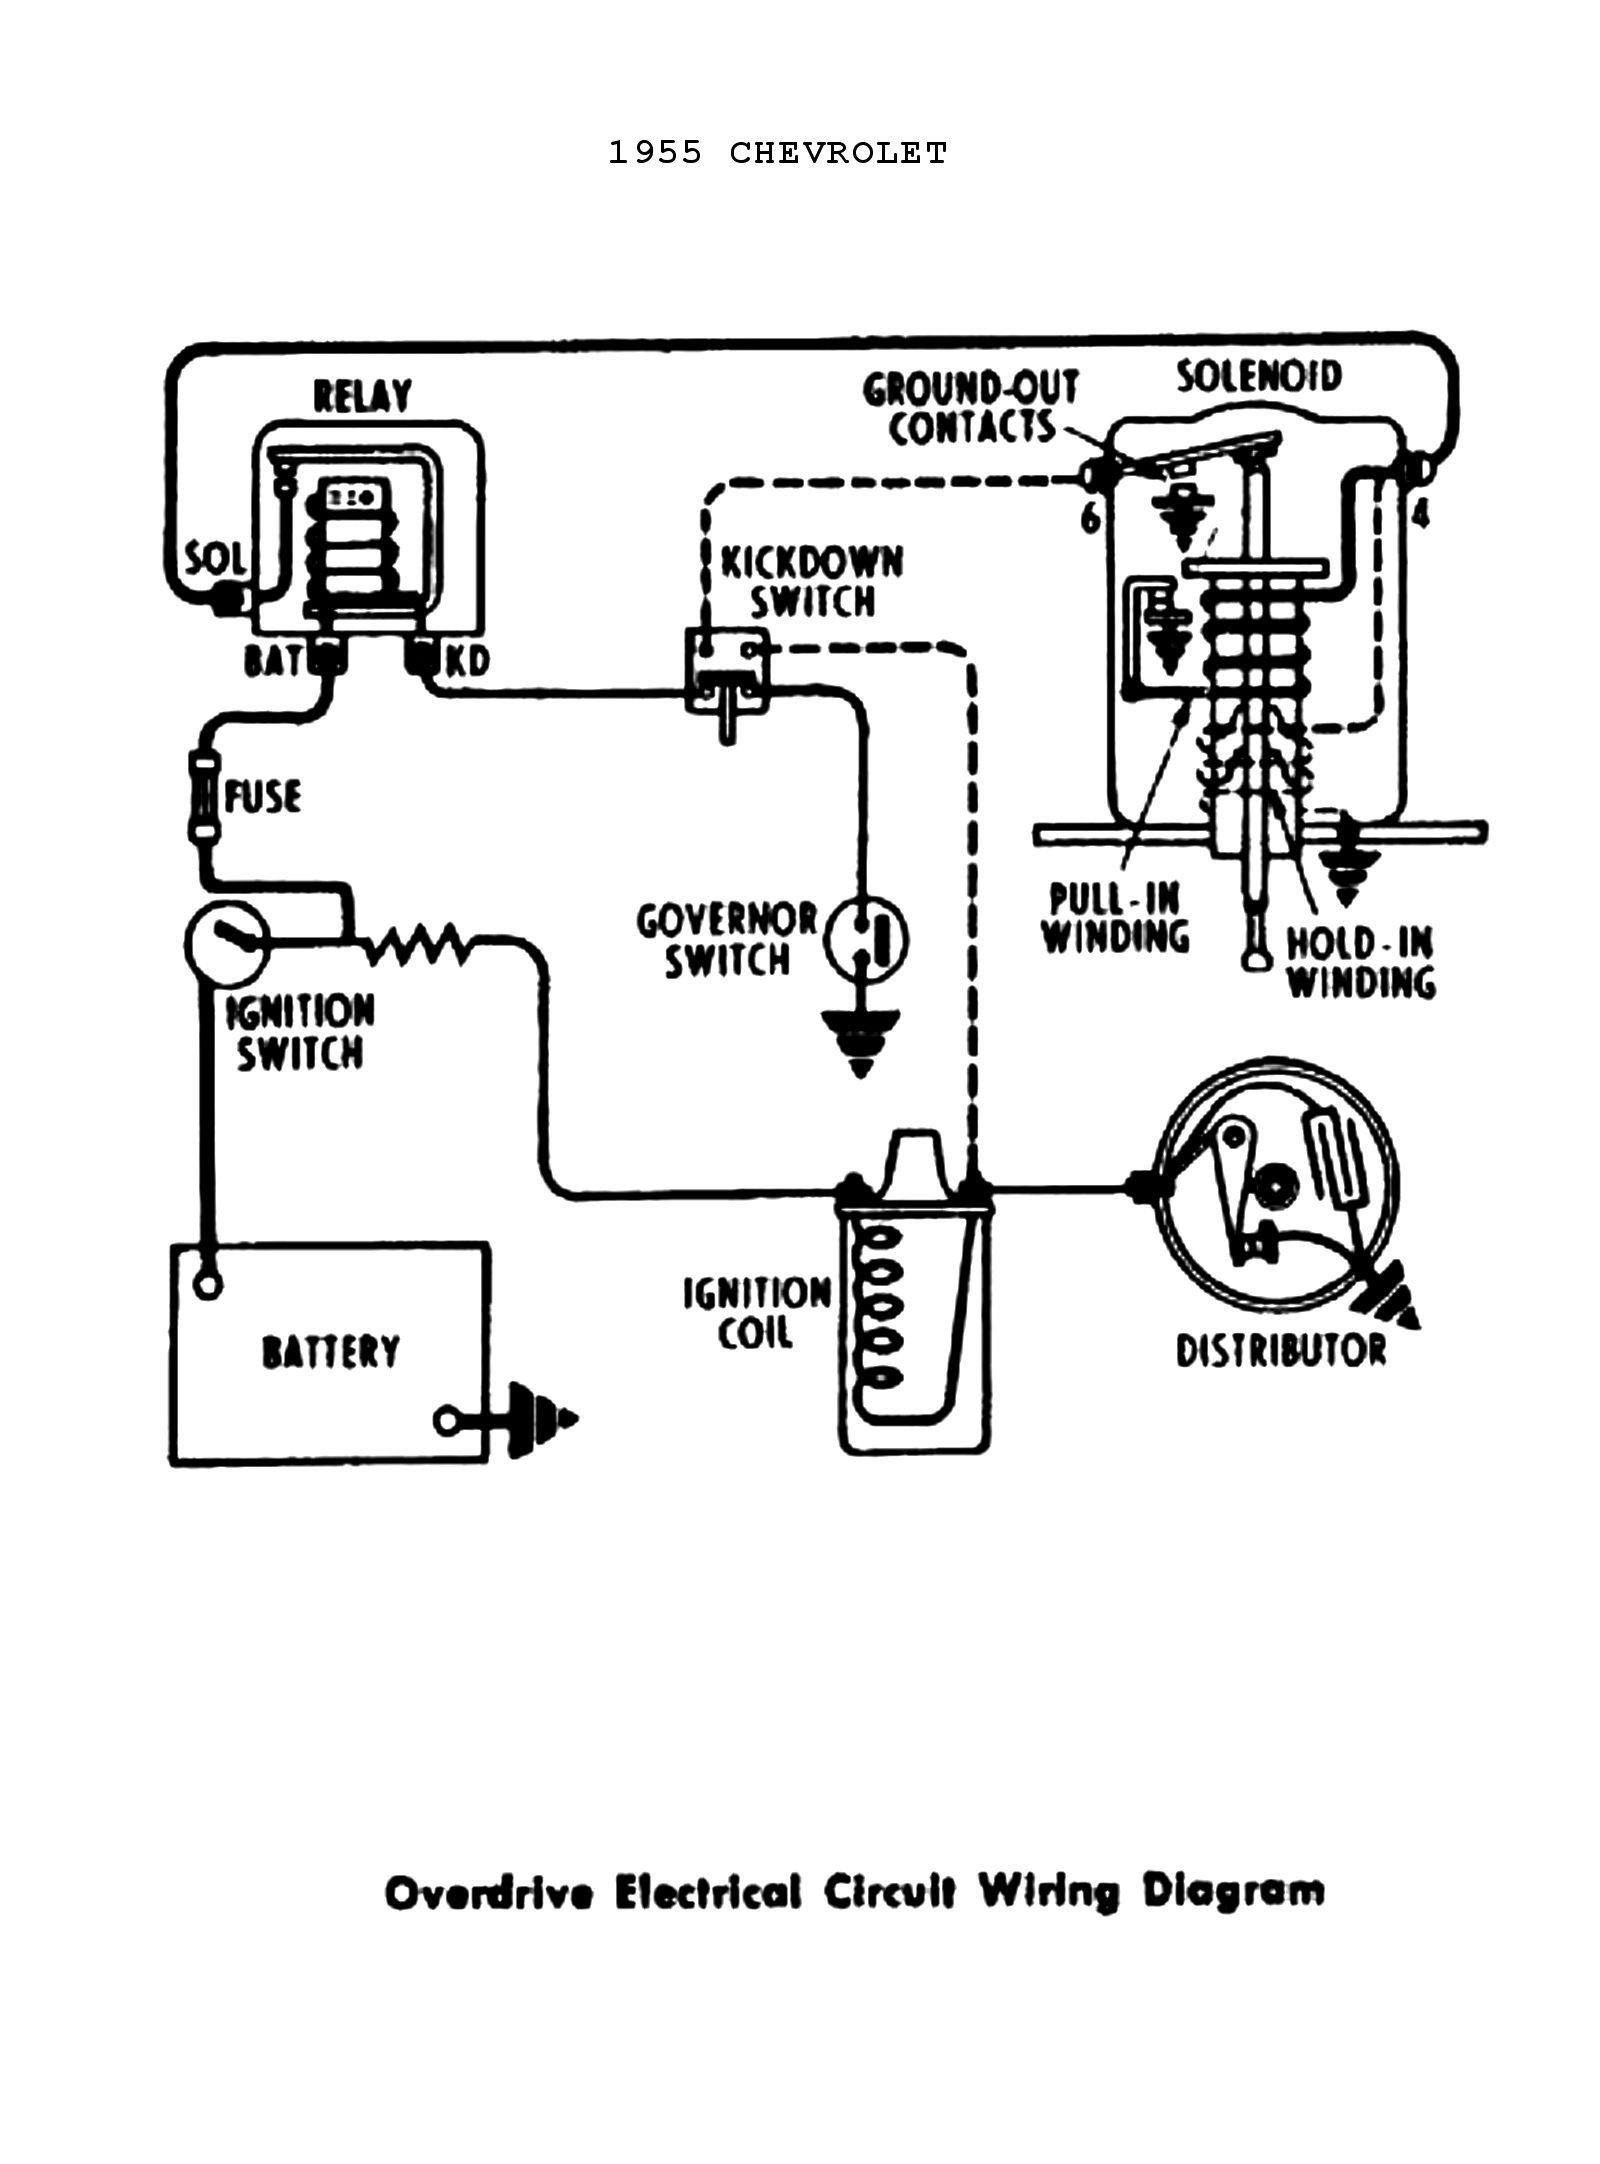 Mack Truck Fuel Pump Wiring Diagrams Worksheet And Diagram Schematic System In Addition Rh Detoxicrecenze Com Fire 2006